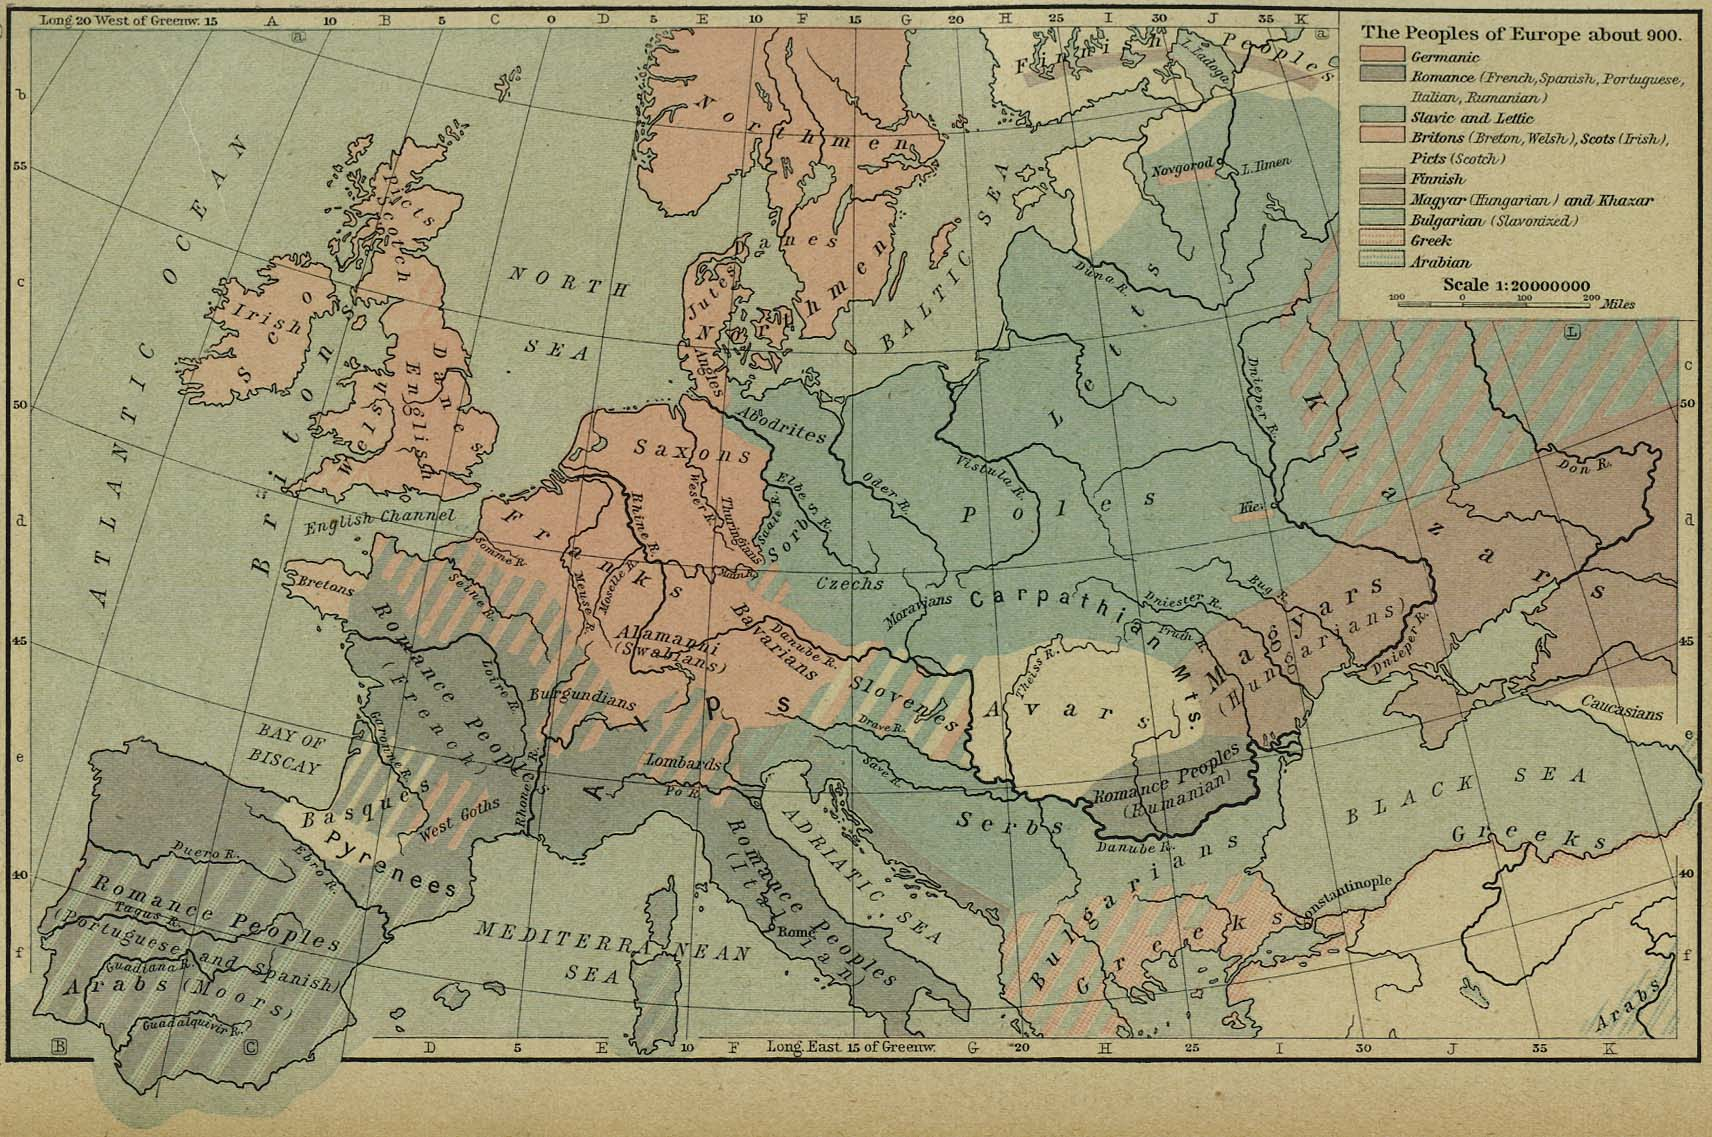 the peoples of europe about 900